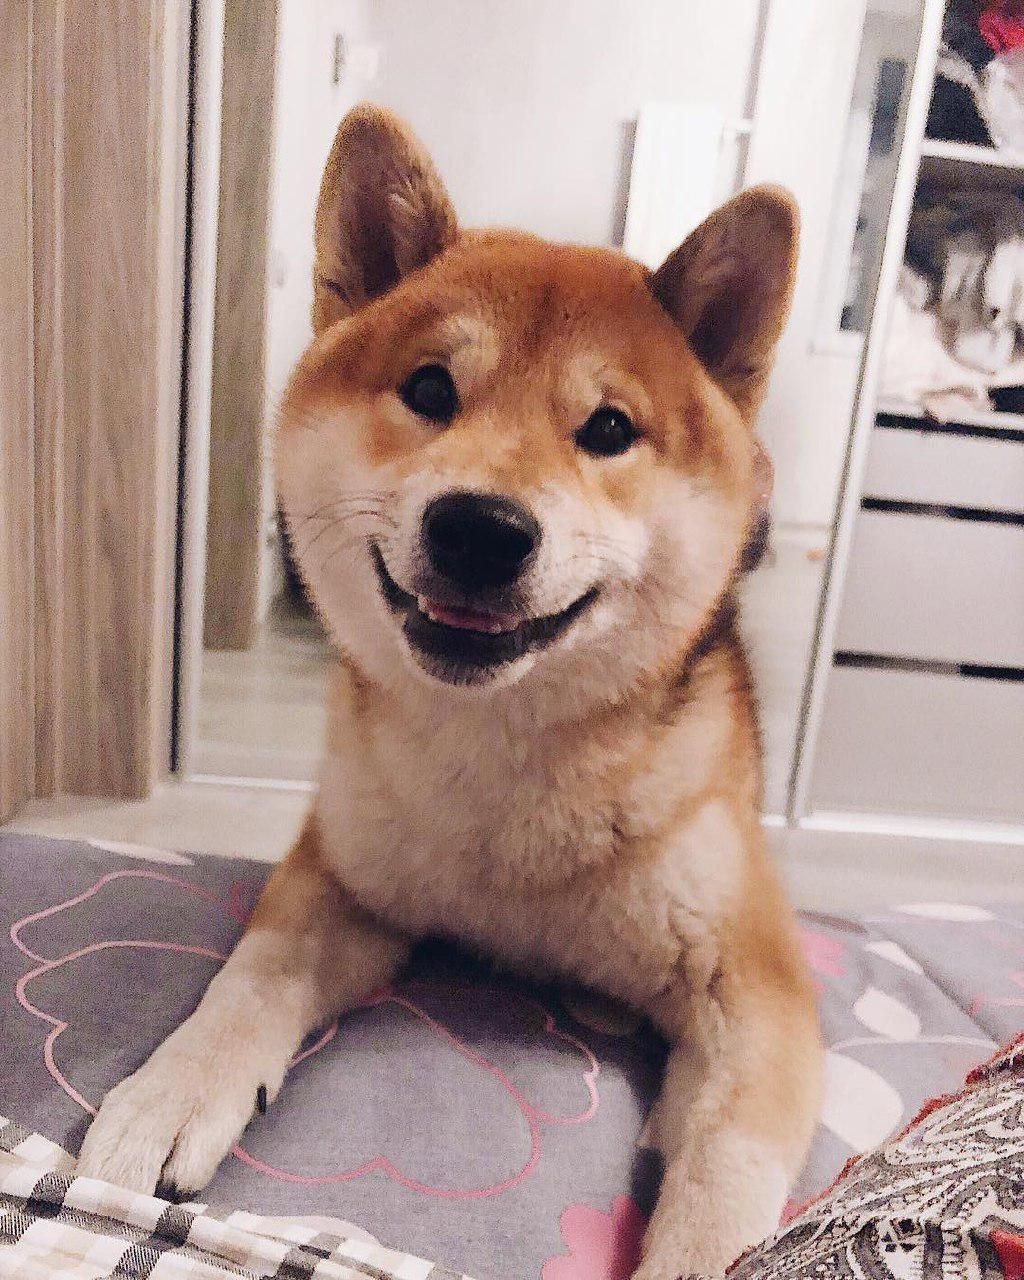 Pin By Tanja Marusic On Dogs In 2020 Smiling Dogs Shiba Inu Dogs